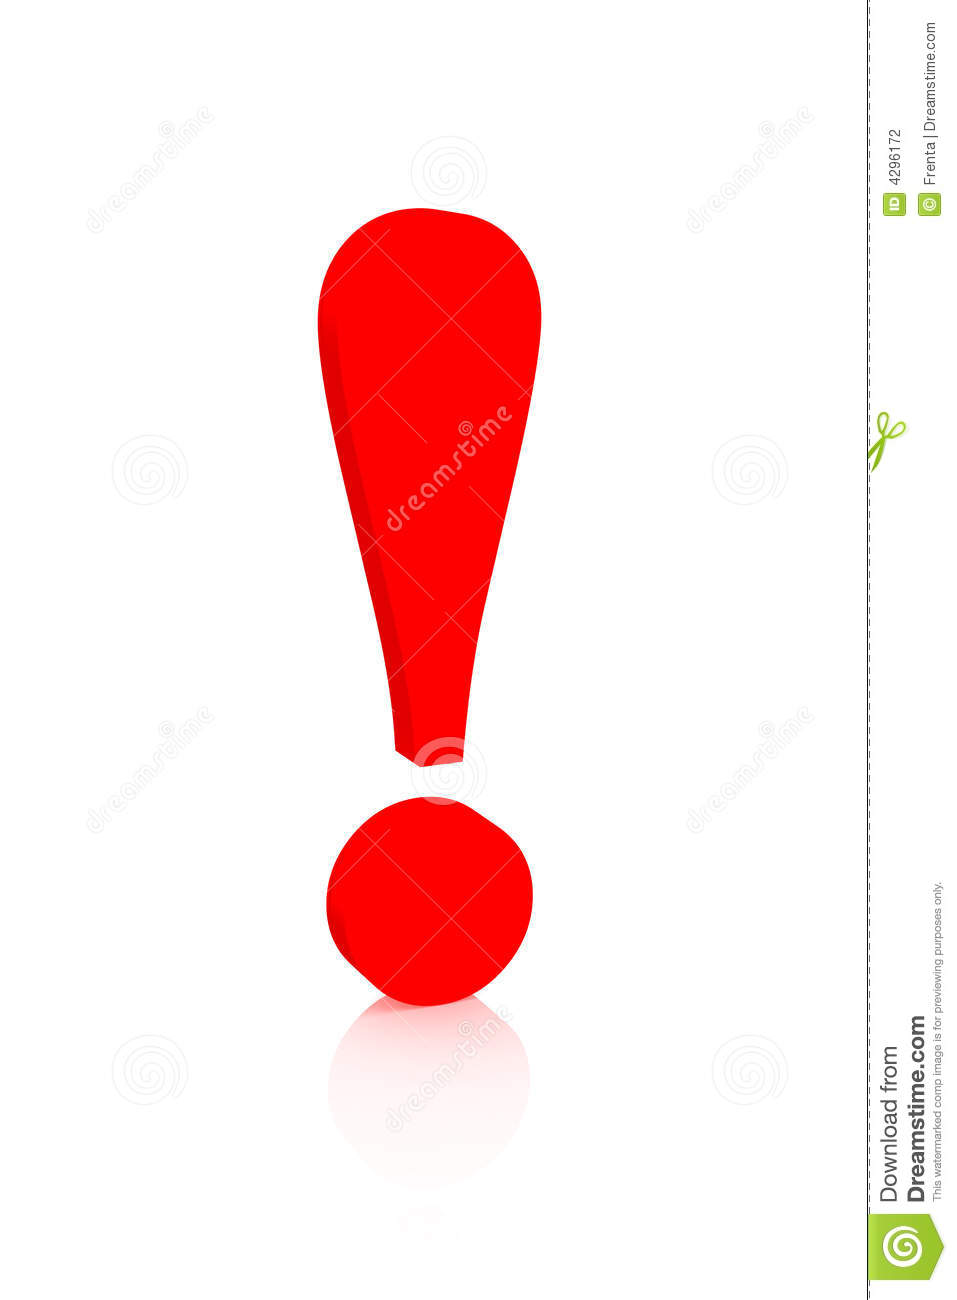 Exclamation Mark Of Red Color Stock Photography - Image: 4296172